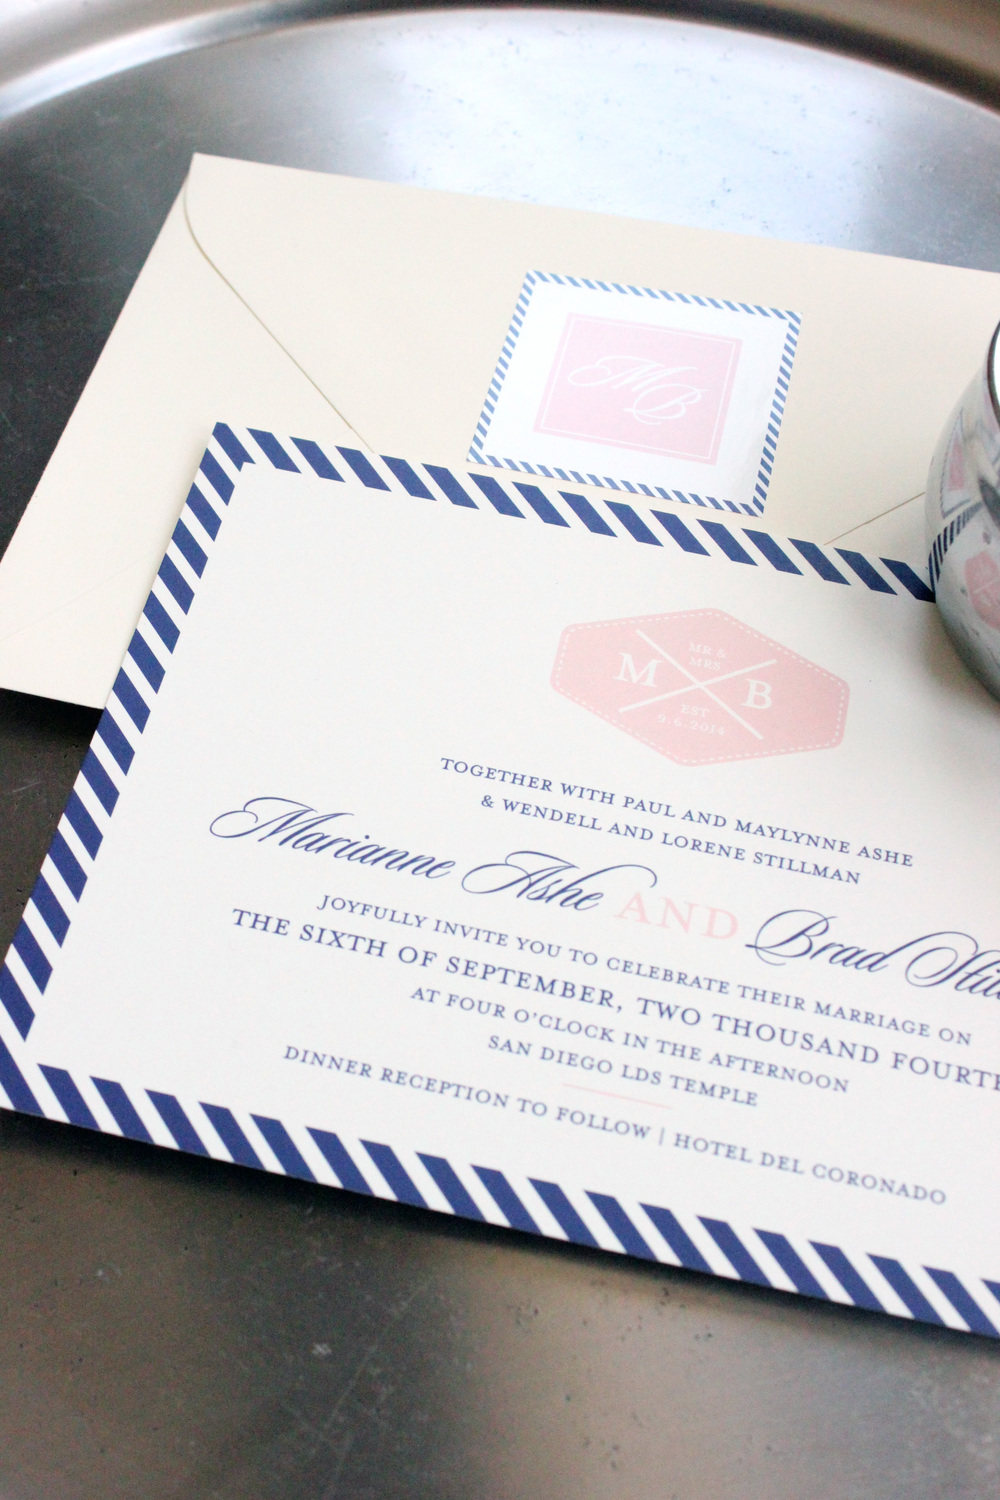 Wedding Invitation Giveaway with Little Words Design // The Overwhelmed Bride Wedding Blog + Southern California Wedding Planner